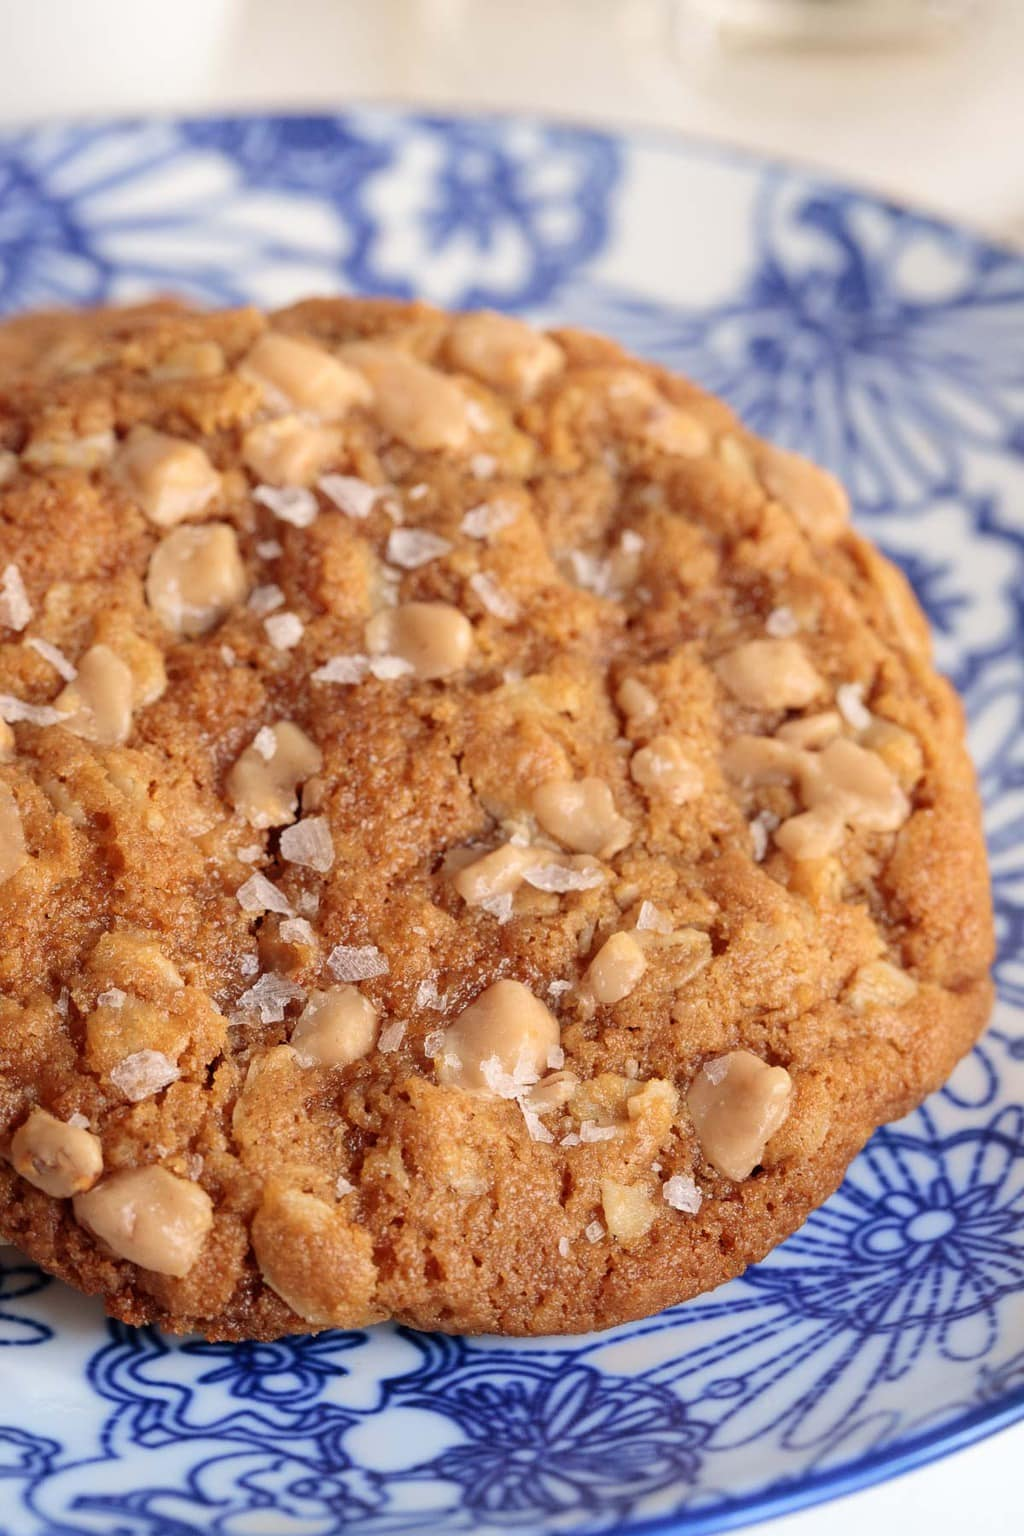 Ultra closeup photo of a Toffee Oatmeal Peanut Butter Cookie on a blue and white patterned plate.